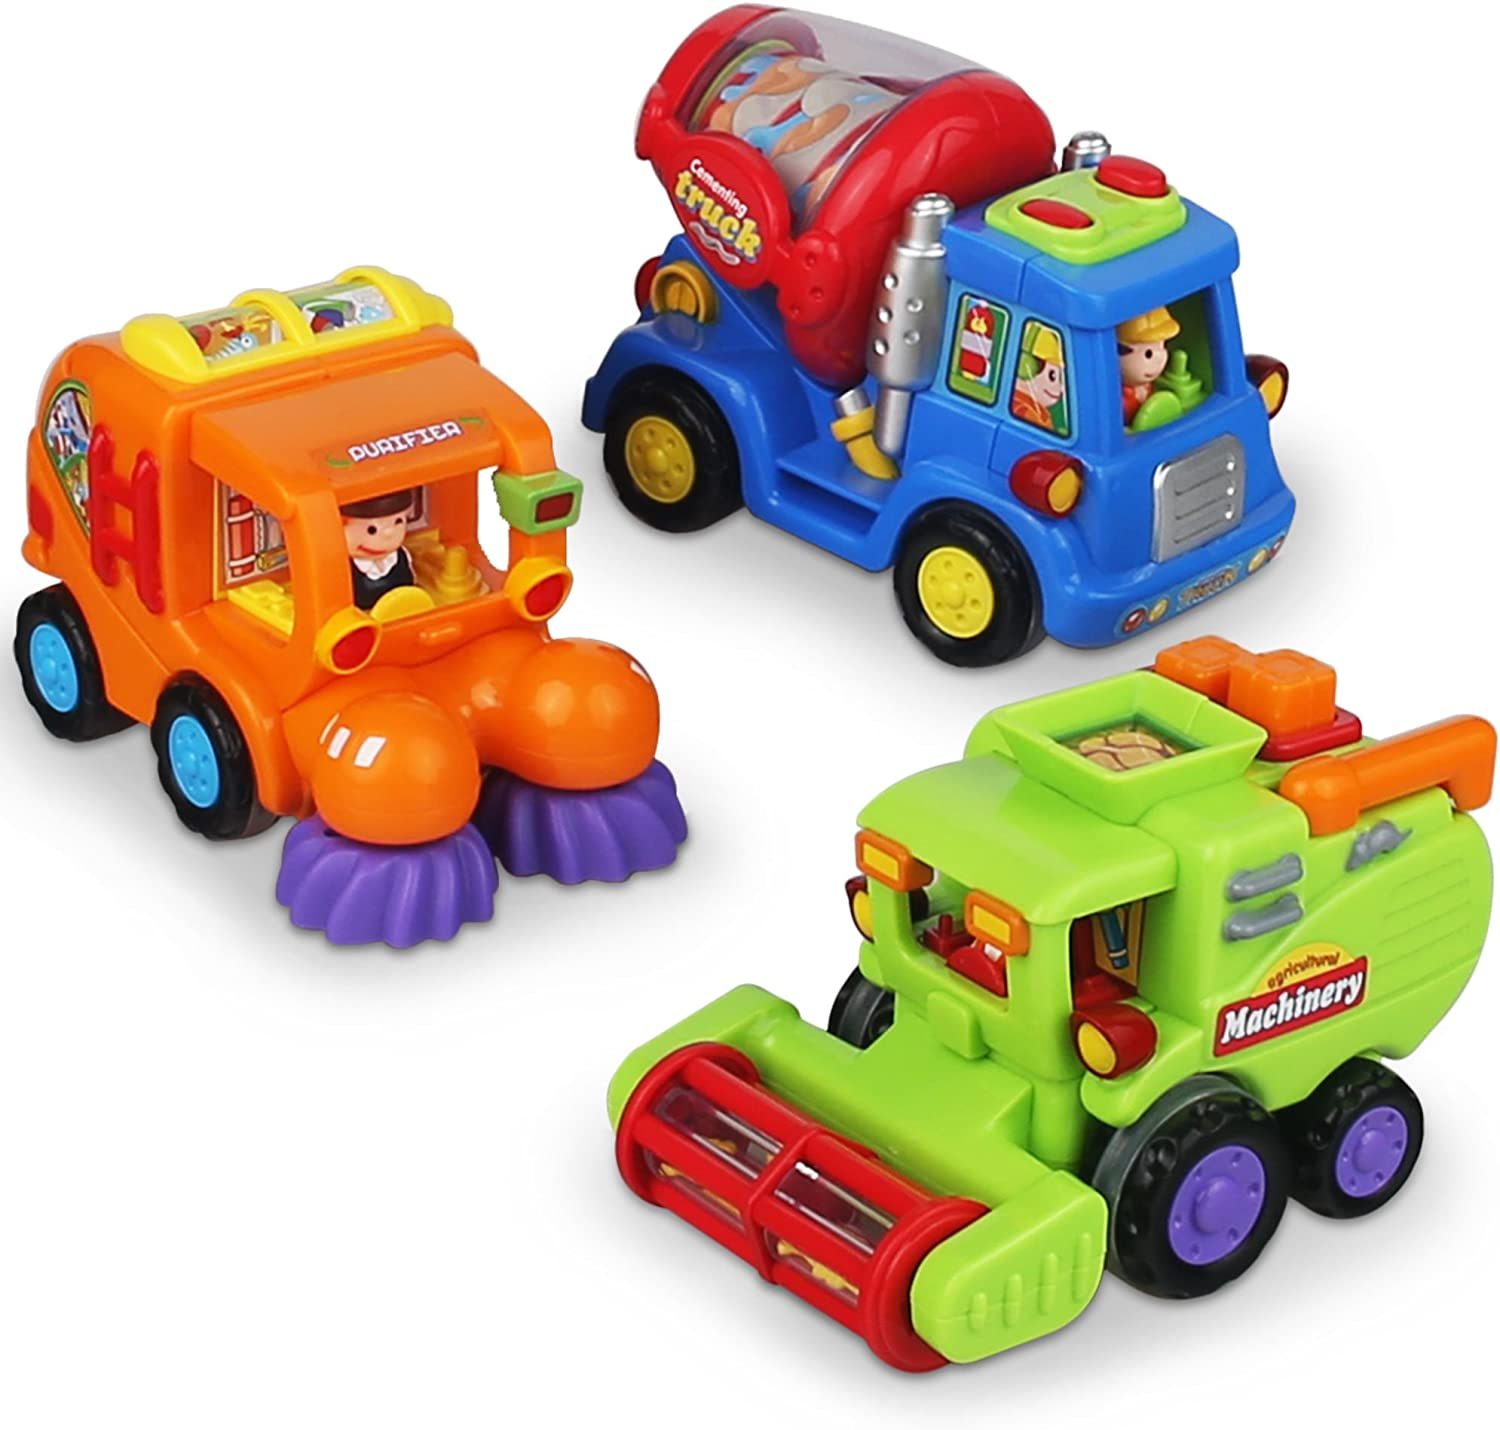 Push and Go Friction Powered Car Toys for Boys - Construction Vehicles Toys for Boys and Toddlers (Street Sweeper Truck, Cement Mixer Truck, Harvester Toy Truck)